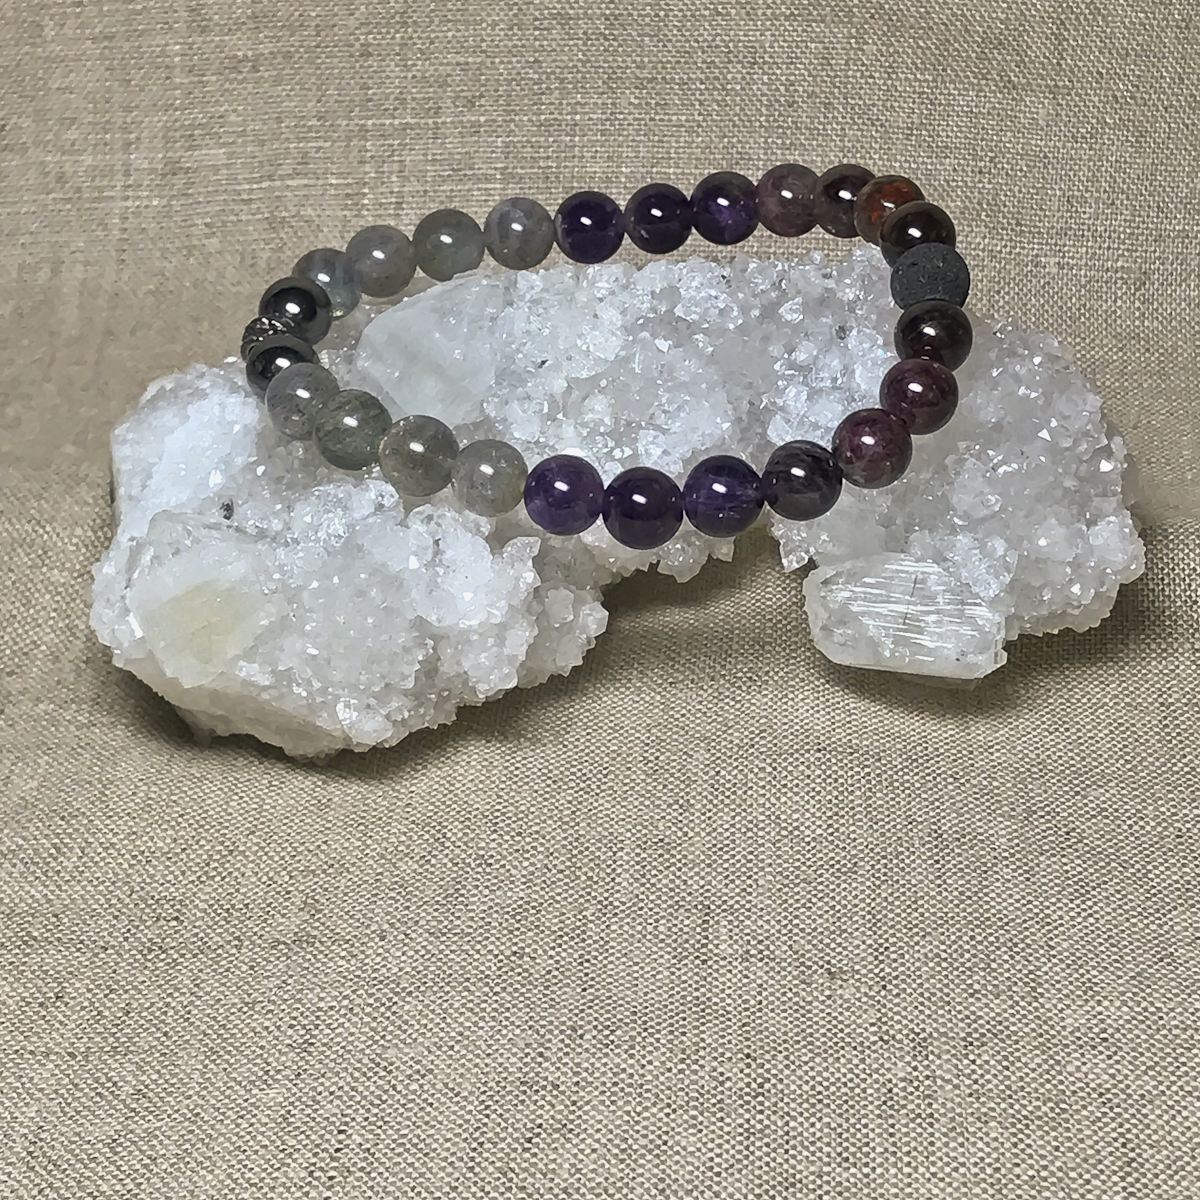 garnet gemstone product color amethyst jewelry topaz blue connected peridot bracelets jaipur gemstones bracelet silver jewellery